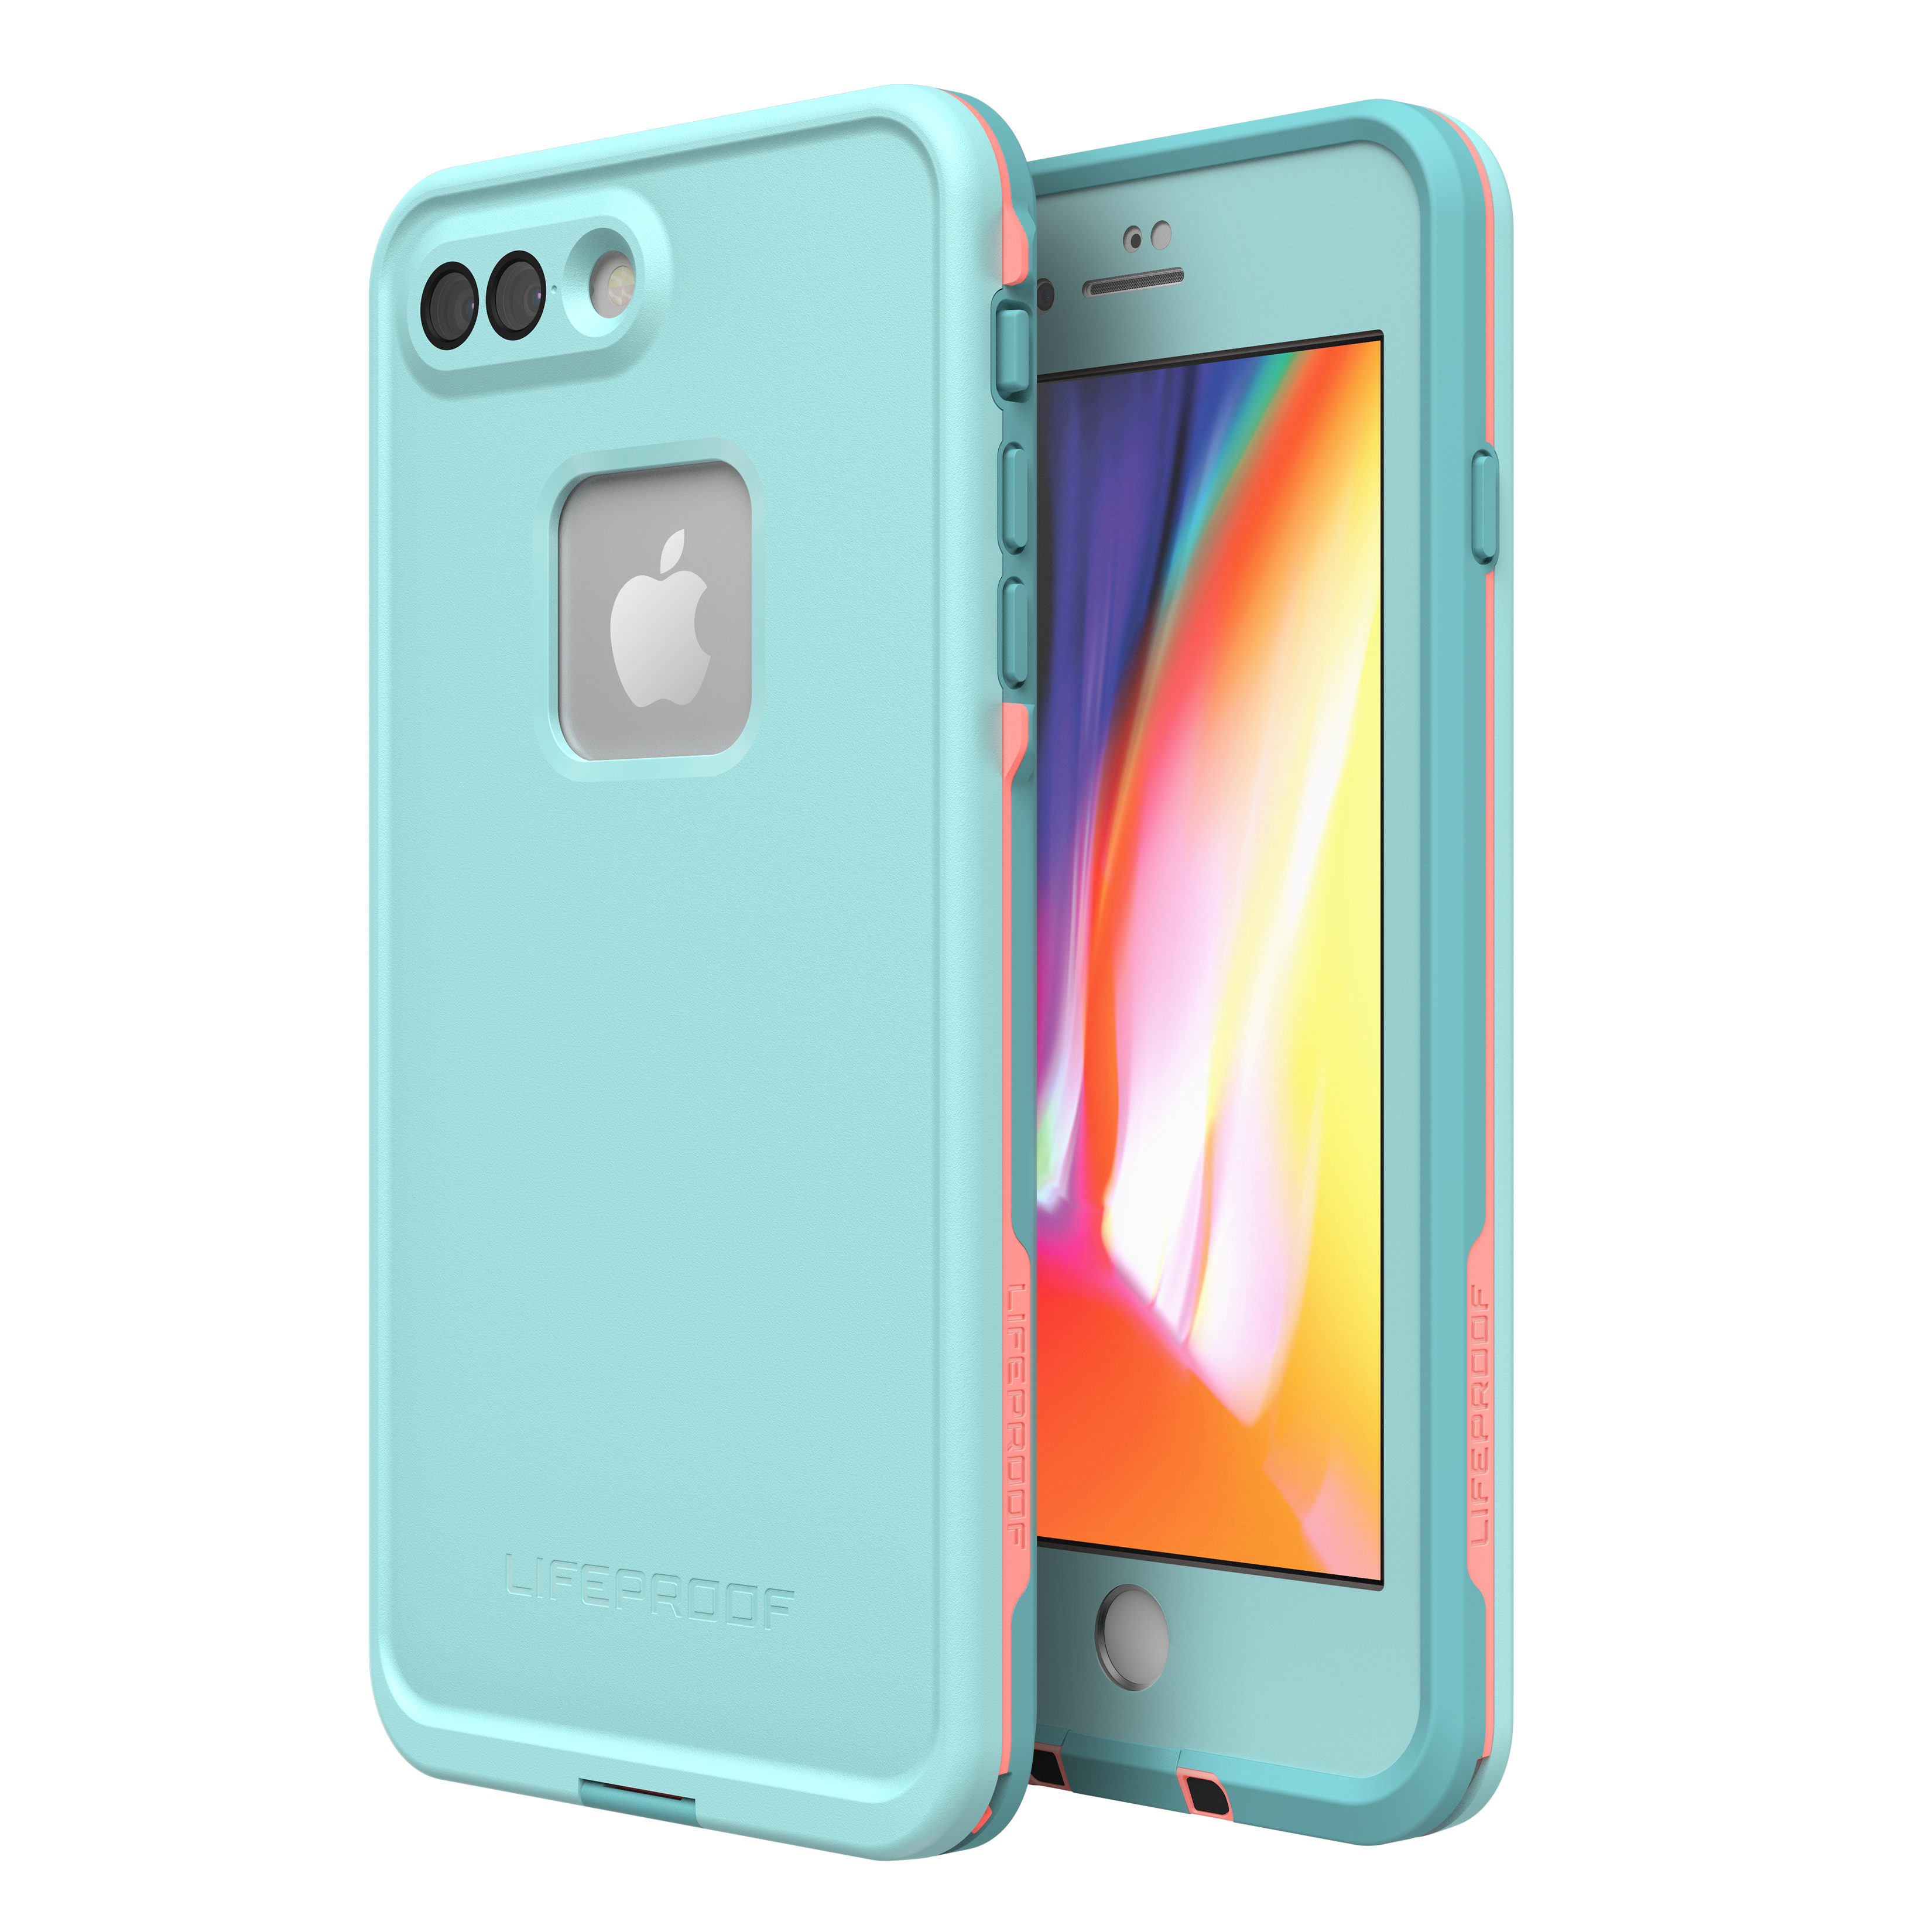 Lifeproof Fre Case For Iphone 8 Plus And Iphone 7 Plus Wipeout